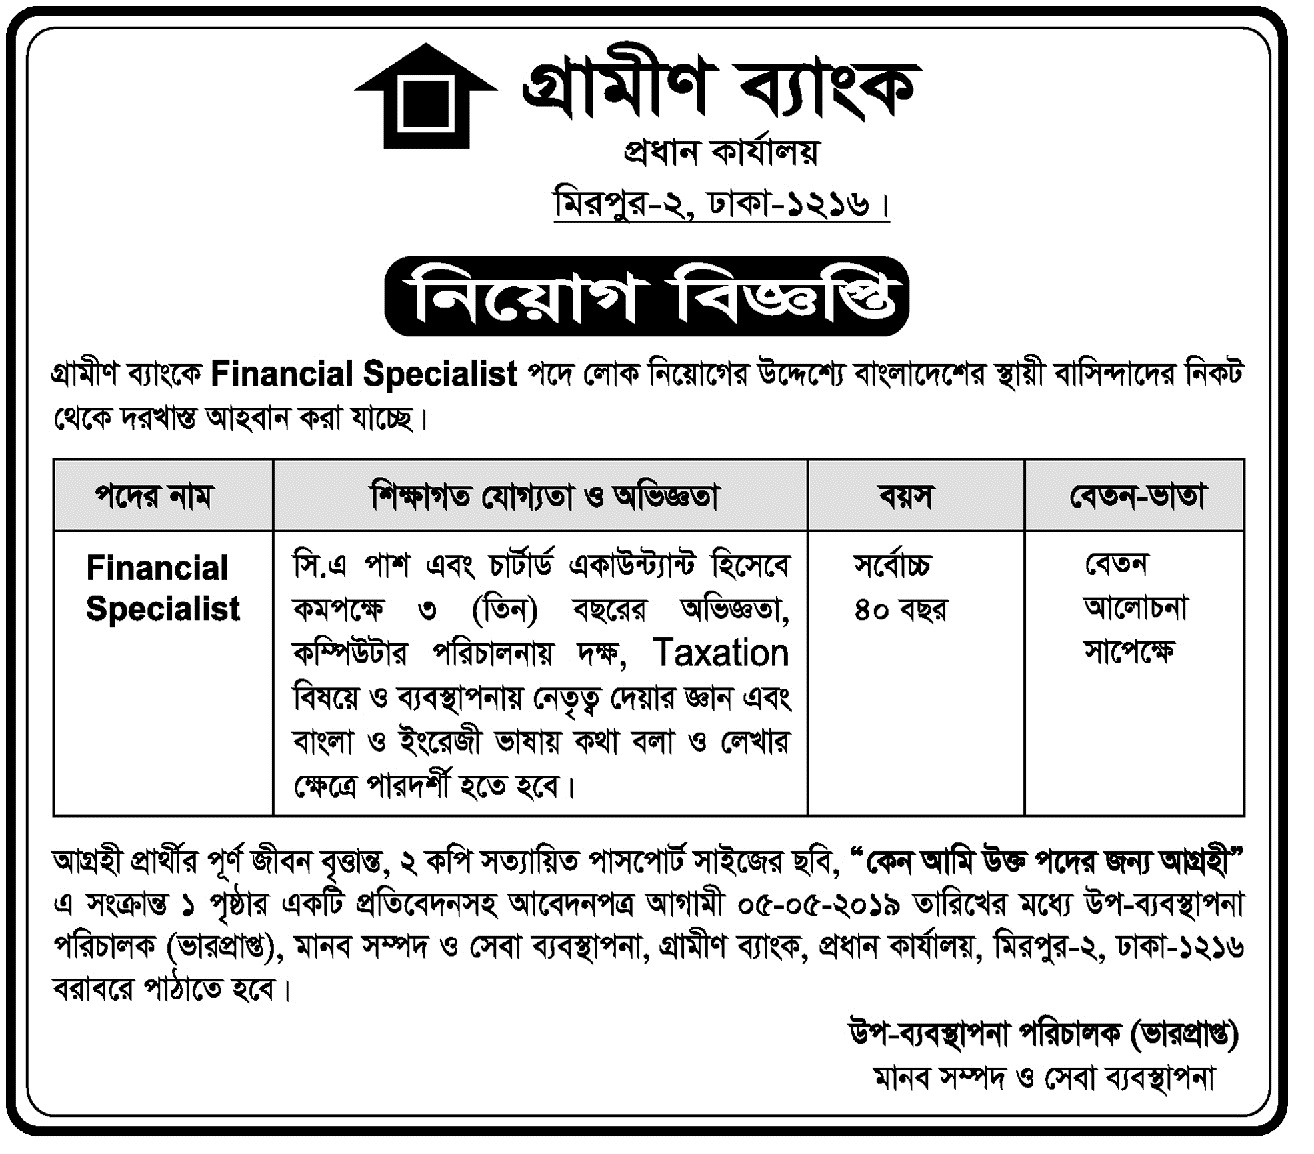 """<p><a href=""""https://www.bdjobscareers.com/grameen-bank-job-circular/""""><strong>Grameen Bank Job Circular 2019</strong></a> has been published by their authority in daily online job portal and to get from the best jobs and the education portal website in<strong> BD Jobs Careers- www.bdjobscareers.com.</strong> For the user understanding, we would like to inform you that,grameen Bank Career updates like Educational Qualification,Job Experience, Age Limit update by Ejobscircular.com .Read below this short Information about Grameen Bank jobs and then Apply if you are Qualified. You must have to apply before 07 October 2018.</p> <h2 style=""""text-align: center;""""><span style=""""color: #0000ff;"""">Grameen Bank Job Circular 2019</span></h2> <p>If you want to more private company job news in Bangladesh on time to connect the best jobs circular website in BD Jobs Careers. We have been sharing all types of most updated occupation advertisement such as recent private bank jobs news, shwapno job circular 2019, haque group job circular 2019, banglalink job circular 2019, aci job circular 2019, private university lecturer jobs in Bangladesh, multinational jobs circular news, embassy jobs in Bangladesh, Prothom alo jobs, government, most recent jobs in Dhaka, airlines jobs in Bangladesh and more. Our main aim provides trusted work info and become top jobs circular website in Bangladesh. So just, visit our website in orderly, hope you must be benefited through the publishing employment information.</p> <p>■ Job Summary</p> <p>■ Organization Name: Grameen Bank</p> <p>■ Post Position Name: Mentioned job circular image</p> <p><strong>■ Posted On: 12 April 2019</strong></p> <p><strong>■ Application Deadline: 05 may 2019</strong></p> <p>■ Salary: Negotiable</p> <p>■ Educational Requirements: See Job Circular Image</p> <p>■ Experience Requirements: See Job Circular Image</p> <p>■ Number of Job Vacancy: 15</p> <p>■ Age Limit for Jobs: See Job Circular Image</p> <p>■ Jobs Location: Anywhere in Ban"""